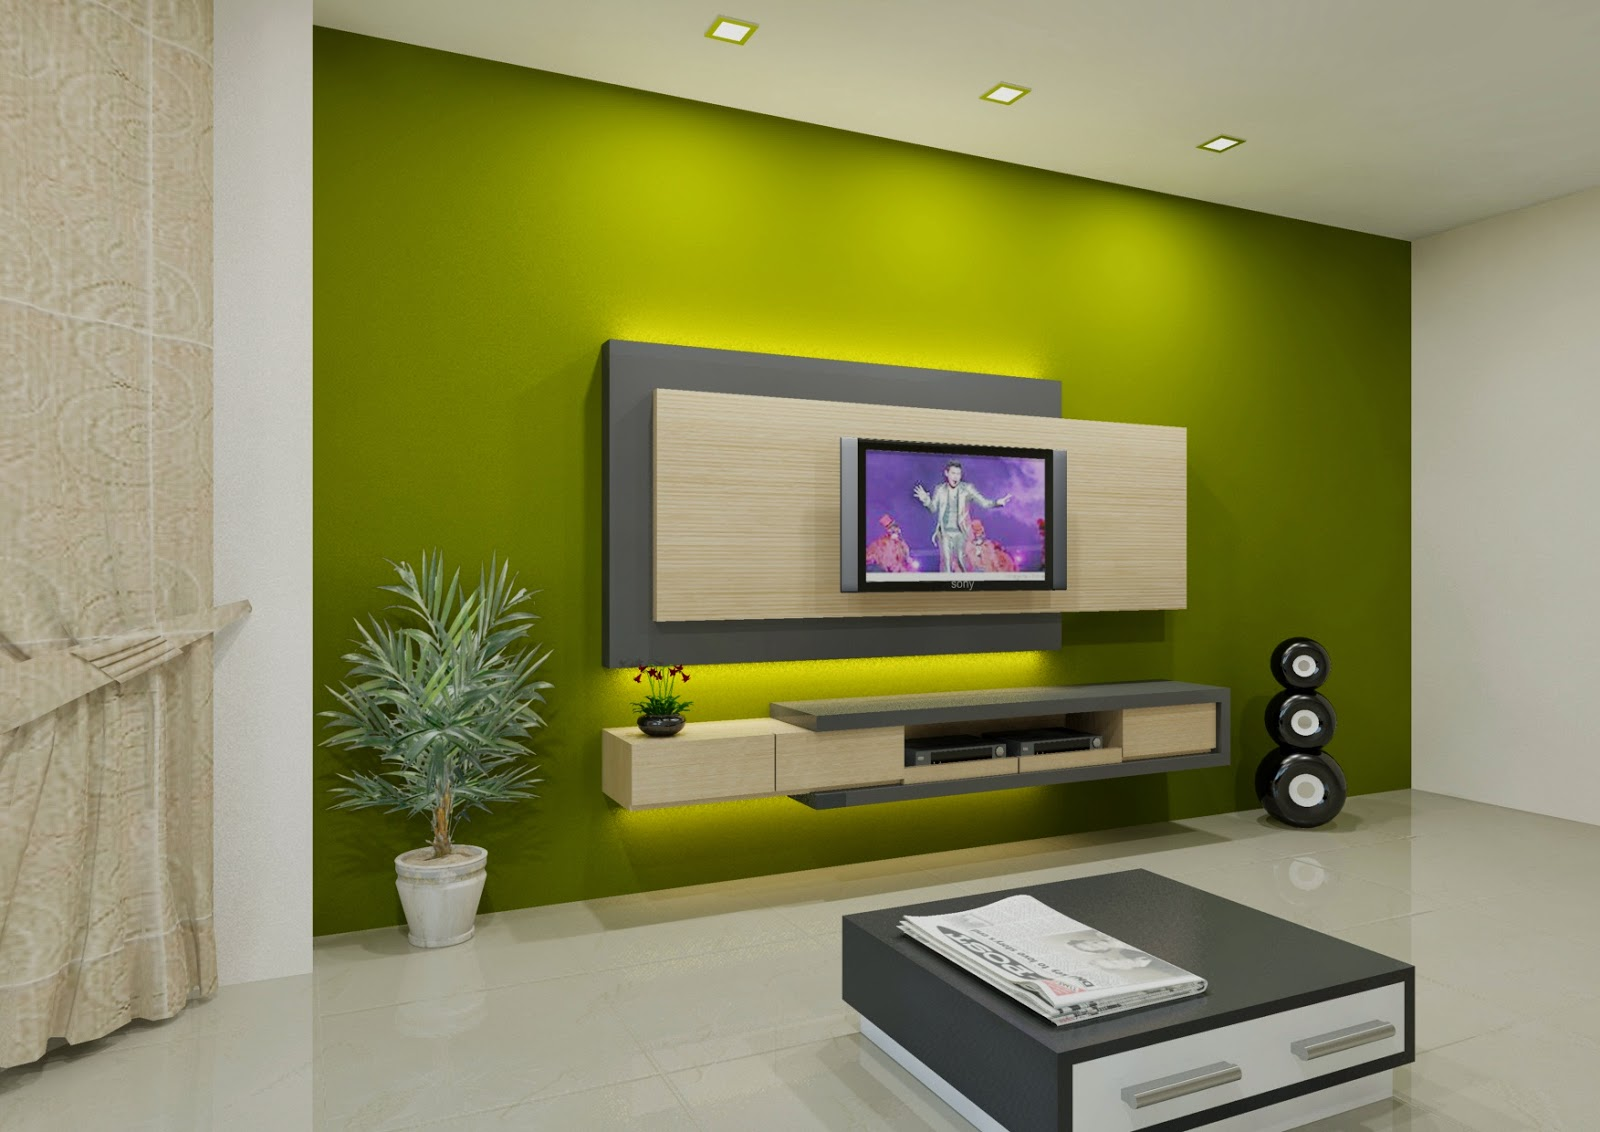 DANAU MEWAH INTERIOR FURNITURE TV CABINET DESIGN